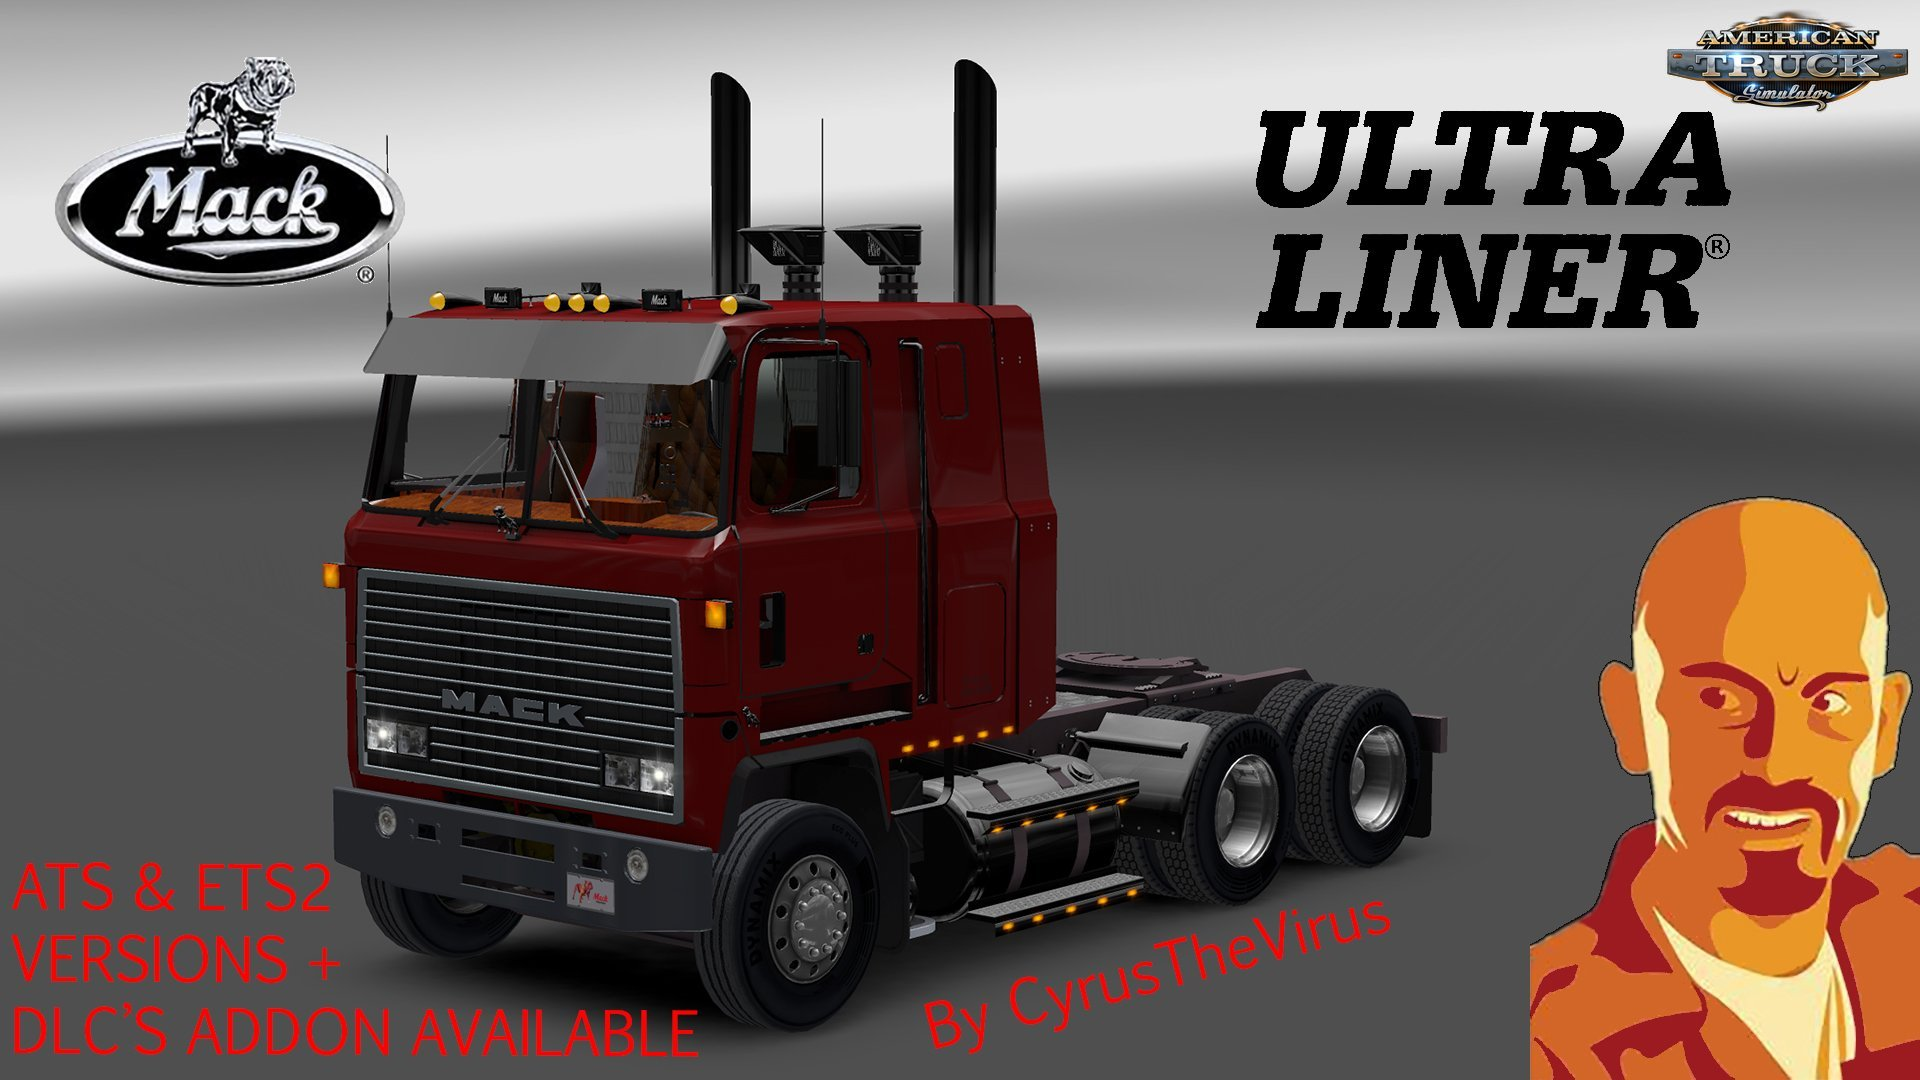 Mack Ultraliner + Interior v1.0 by CyrusTheVirus (1.30.x)